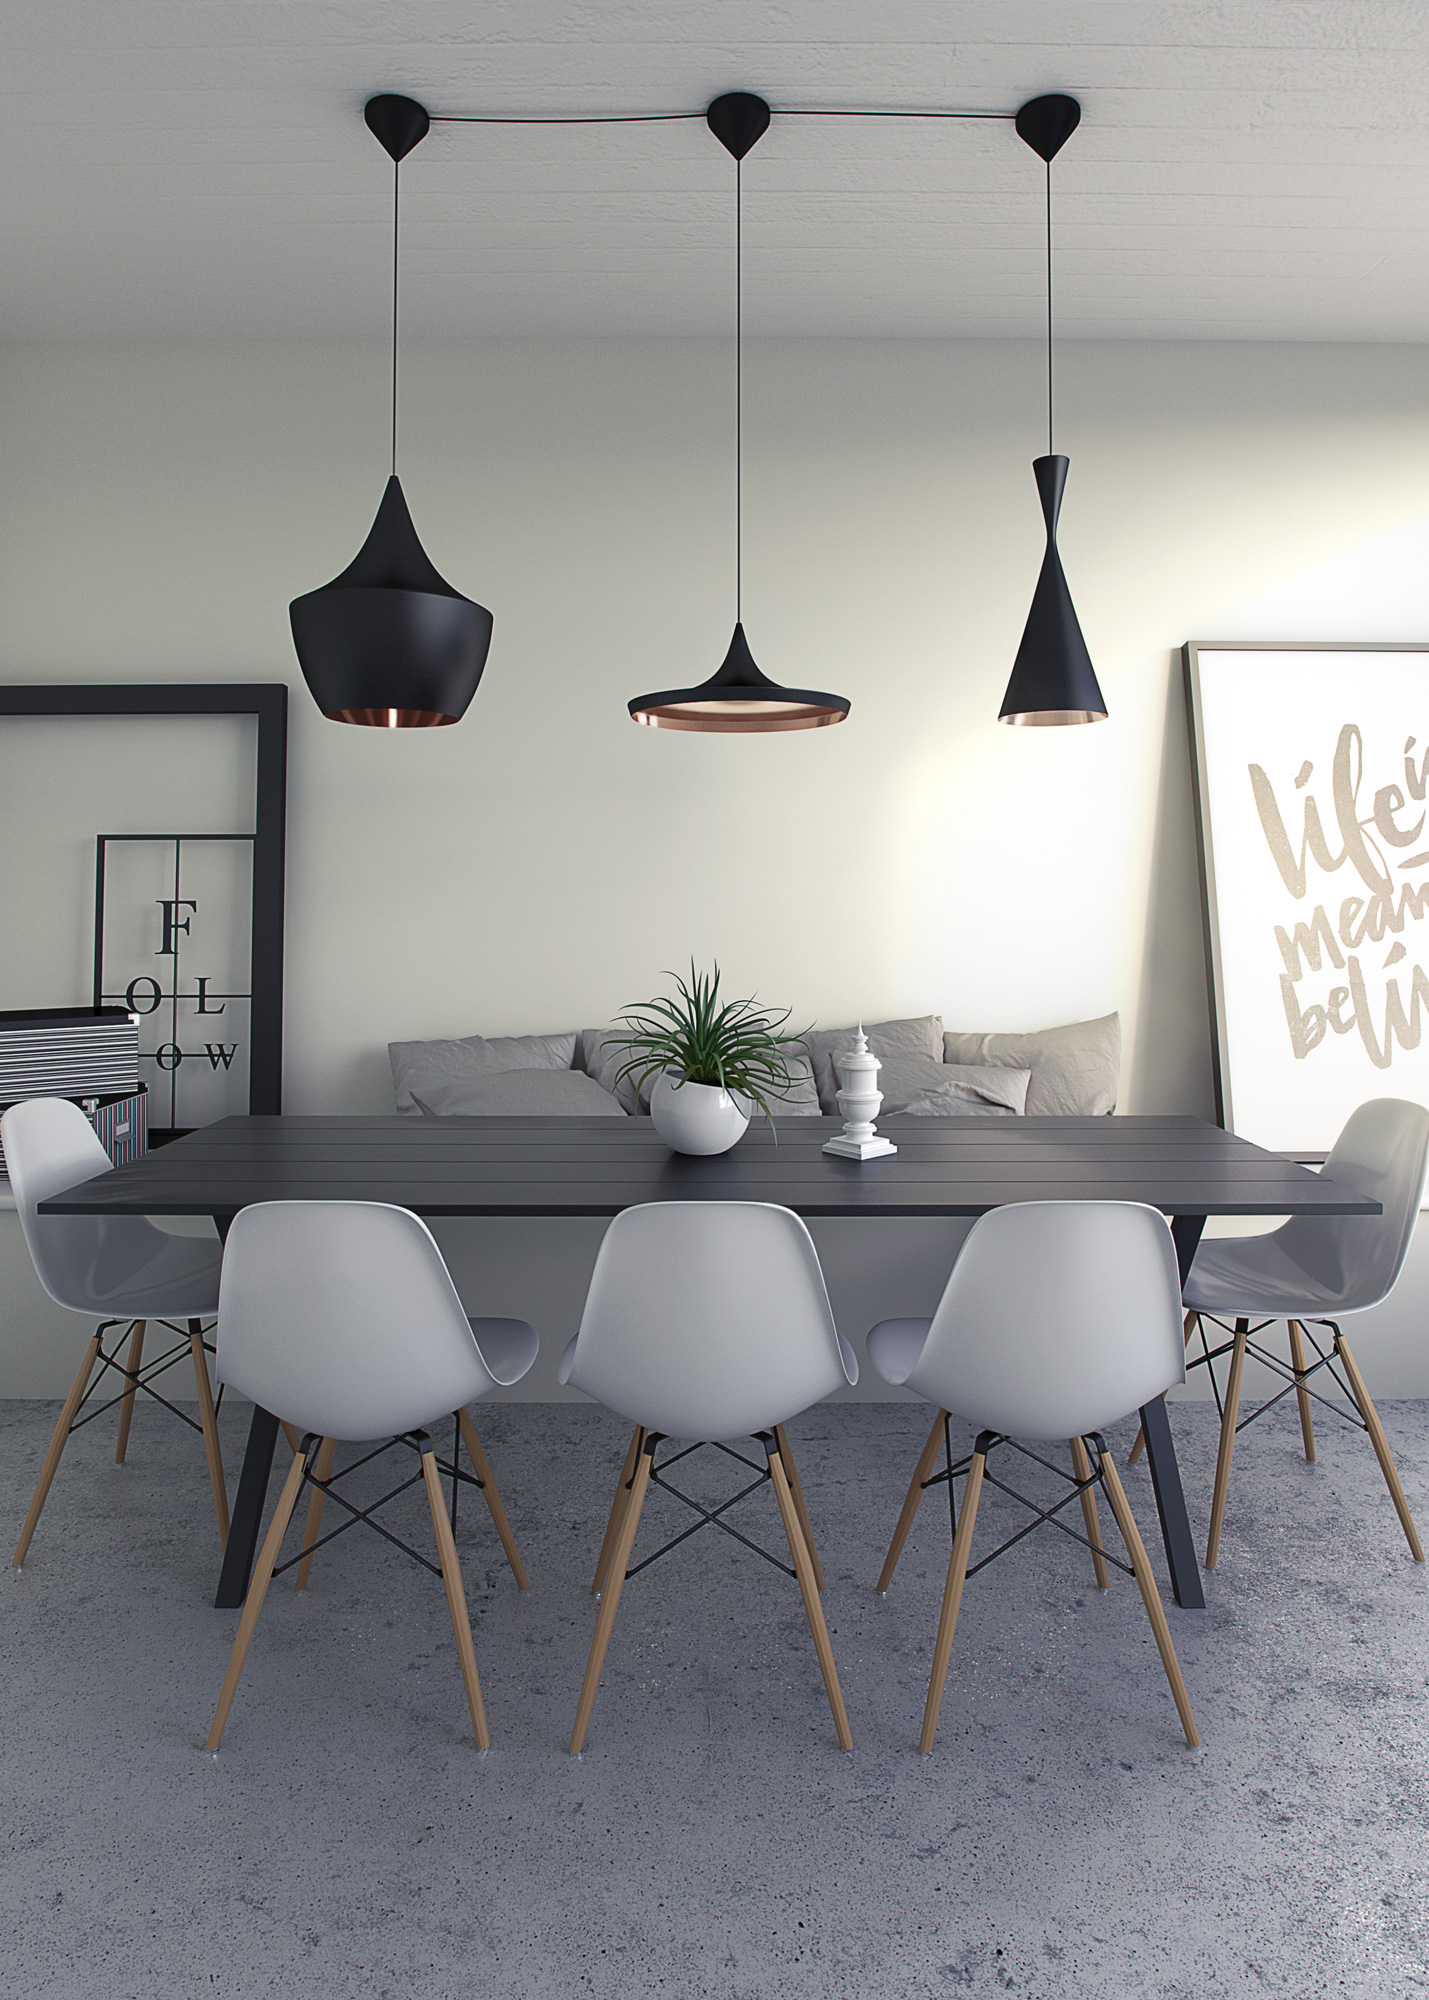 Architecturual Visualisation, Interior CGI, Eames Chairs and Tom Dixon lights